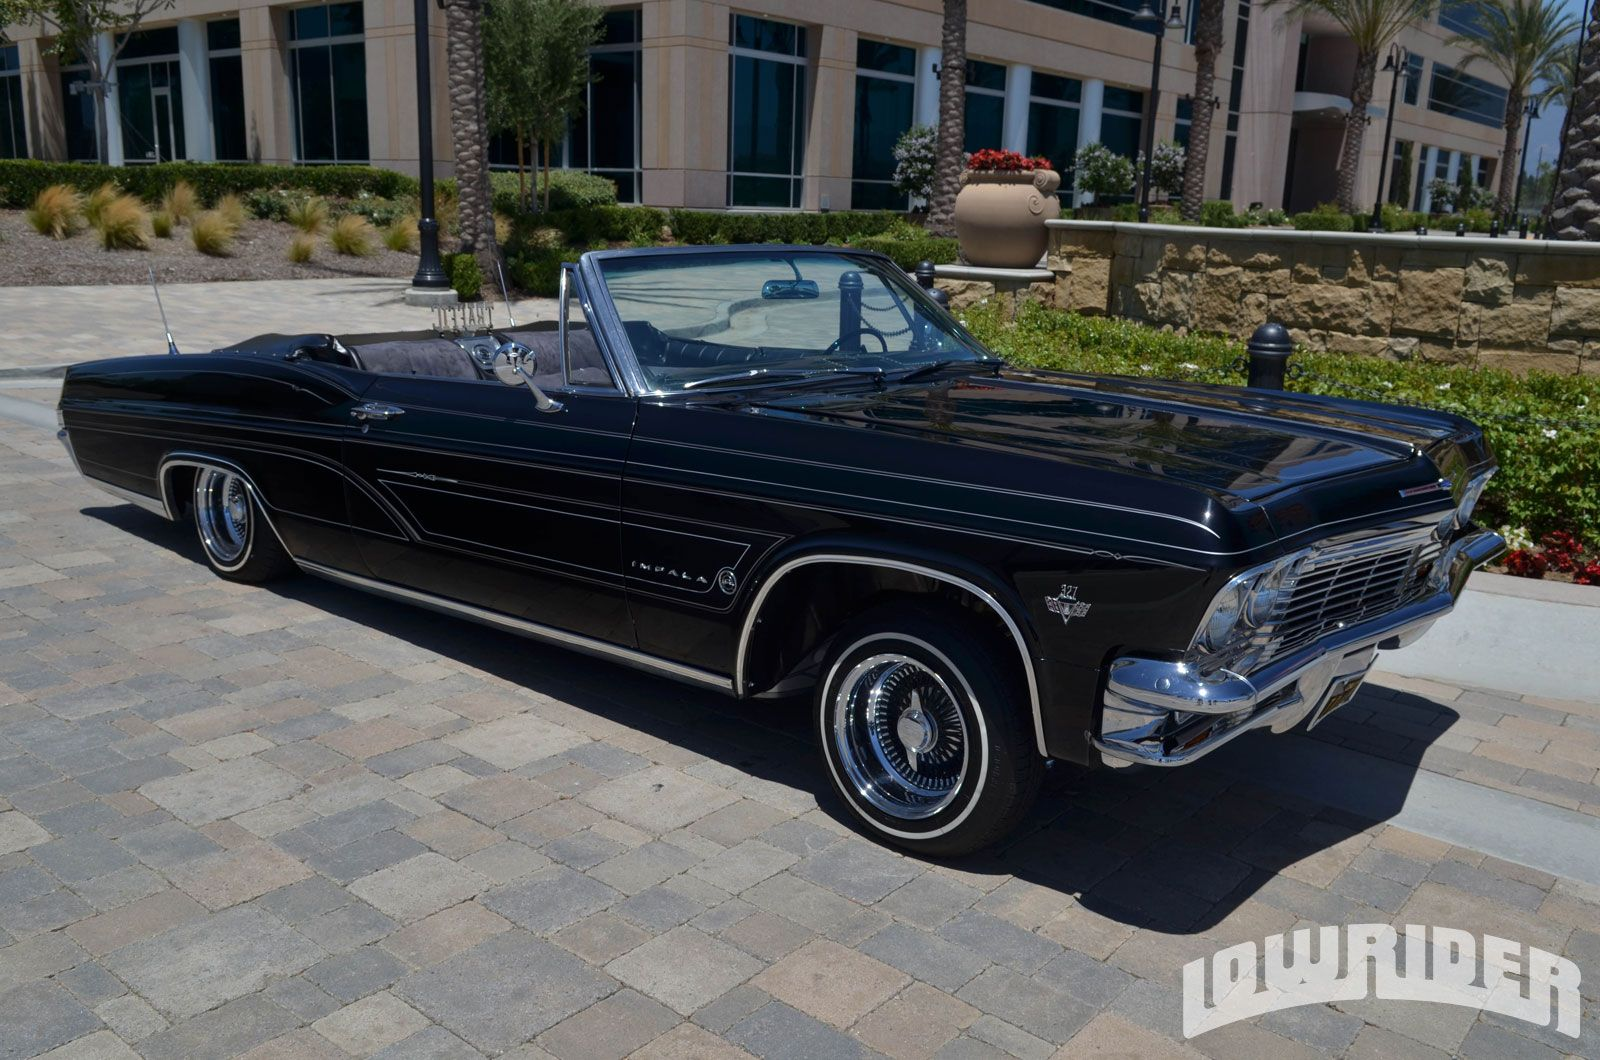 Pin By Richard North On Richie Impala Lowriders Cars